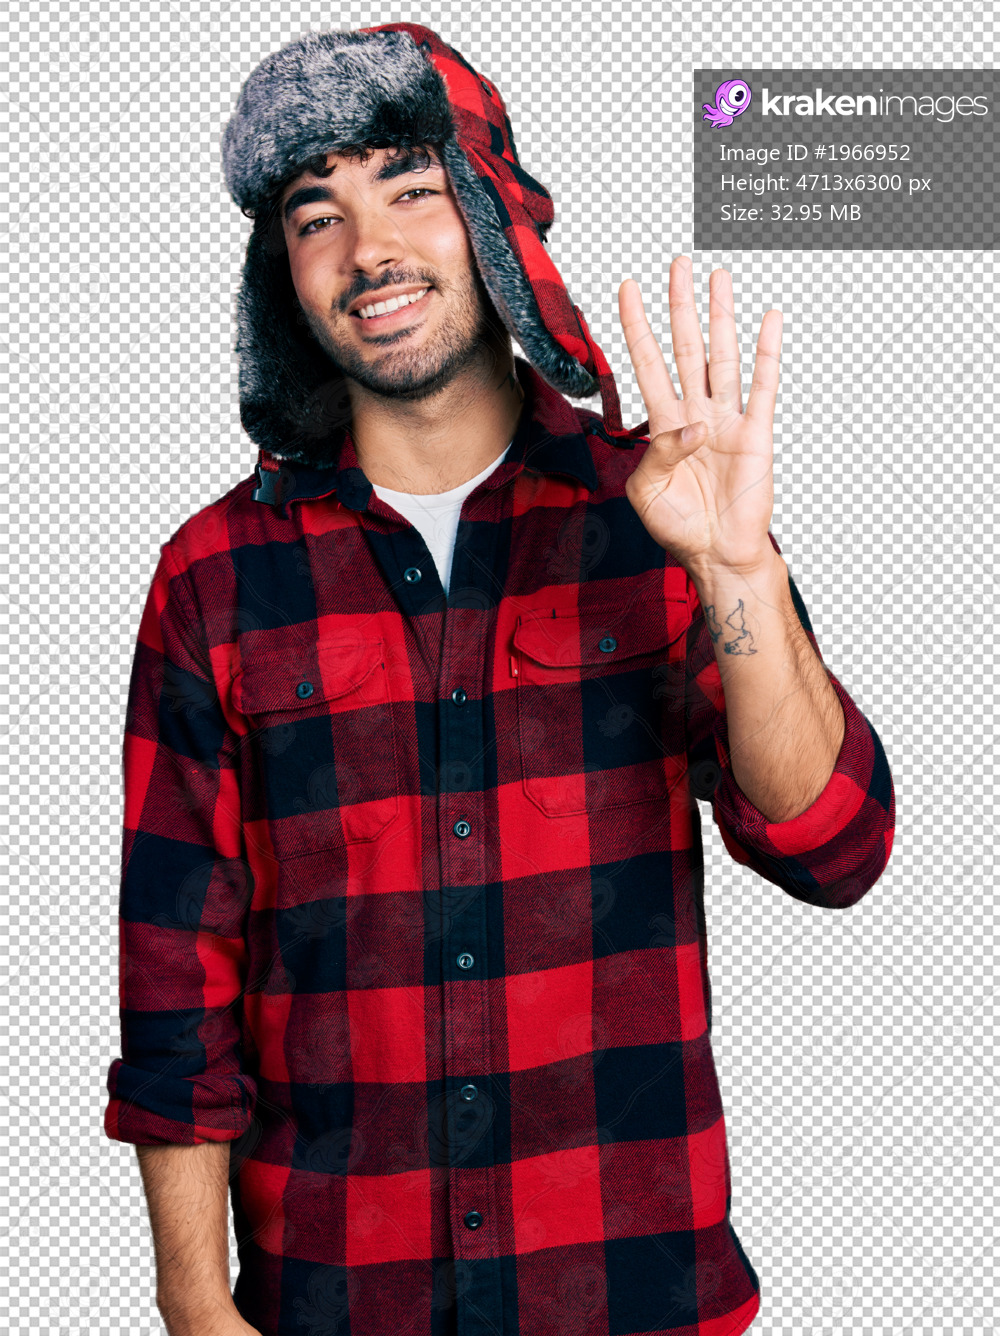 Hispanic young man with beard wearing fluffy earmuff hat showing and pointing up with fingers number four while smiling confident and happy.